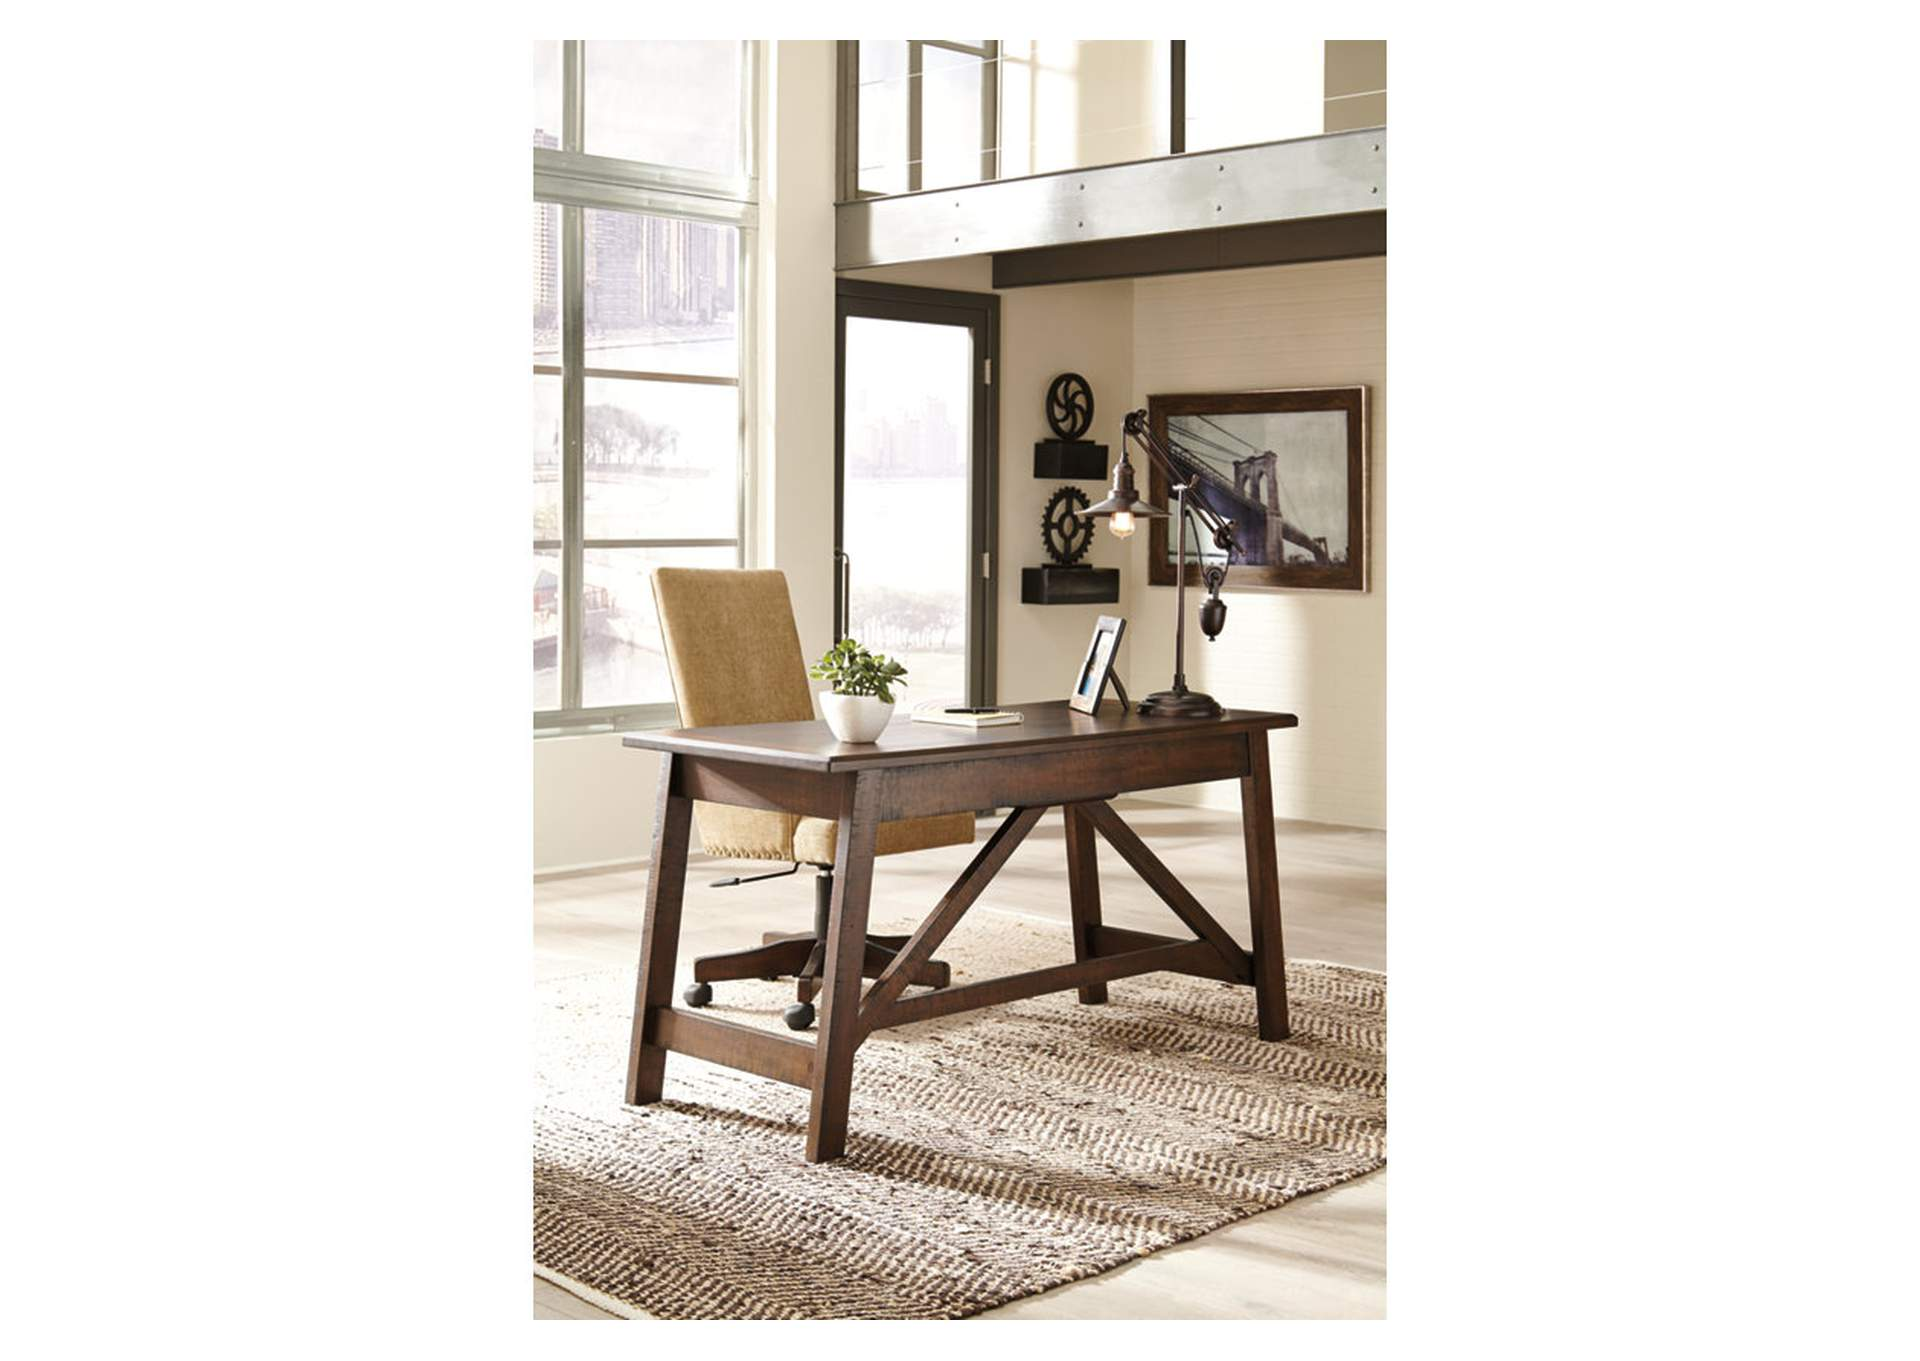 Baldridge Rustic Brown Upholstered Swivel Desk Chair,Signature Design By Ashley